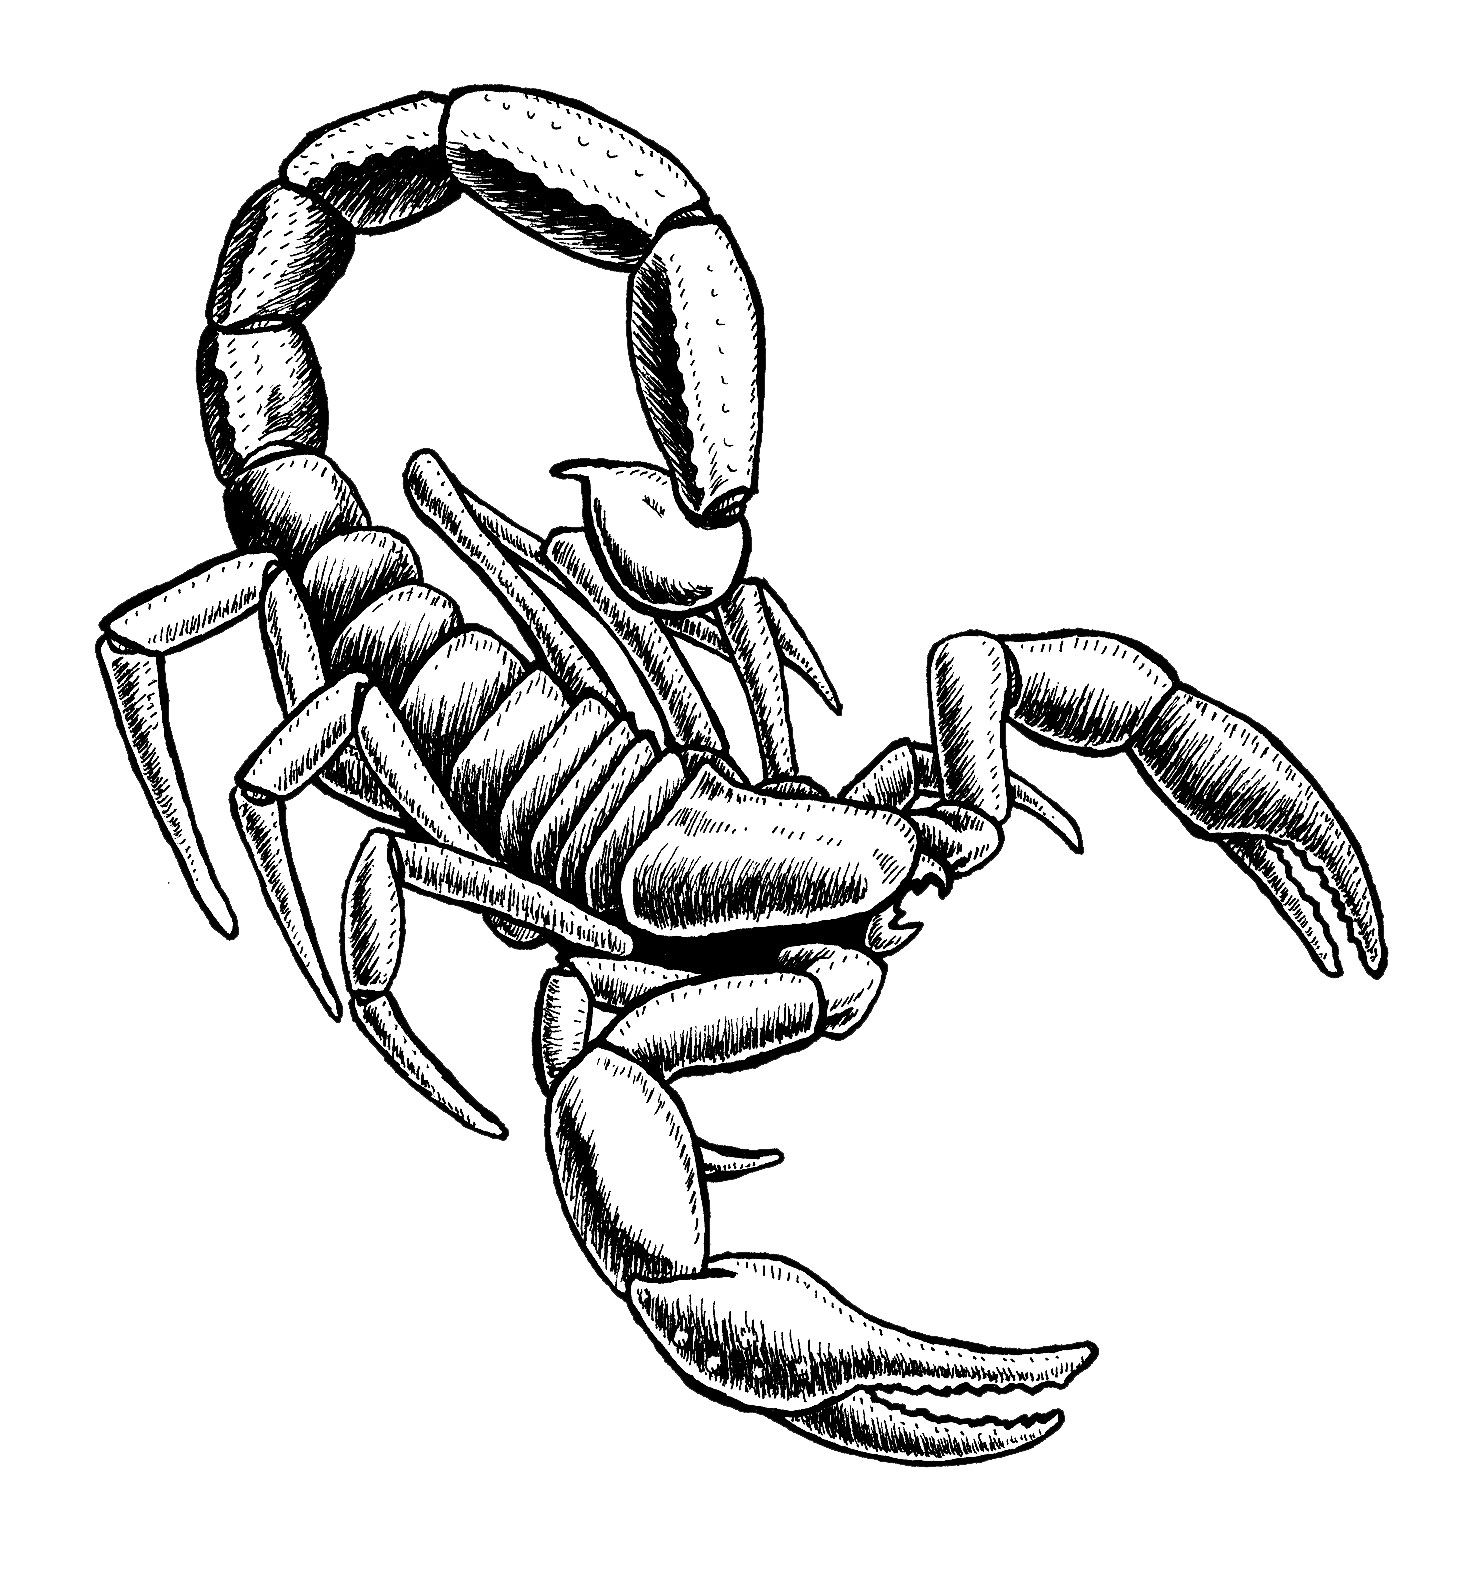 Drawn scorpion easy Clip hostted Scorpion Draw art